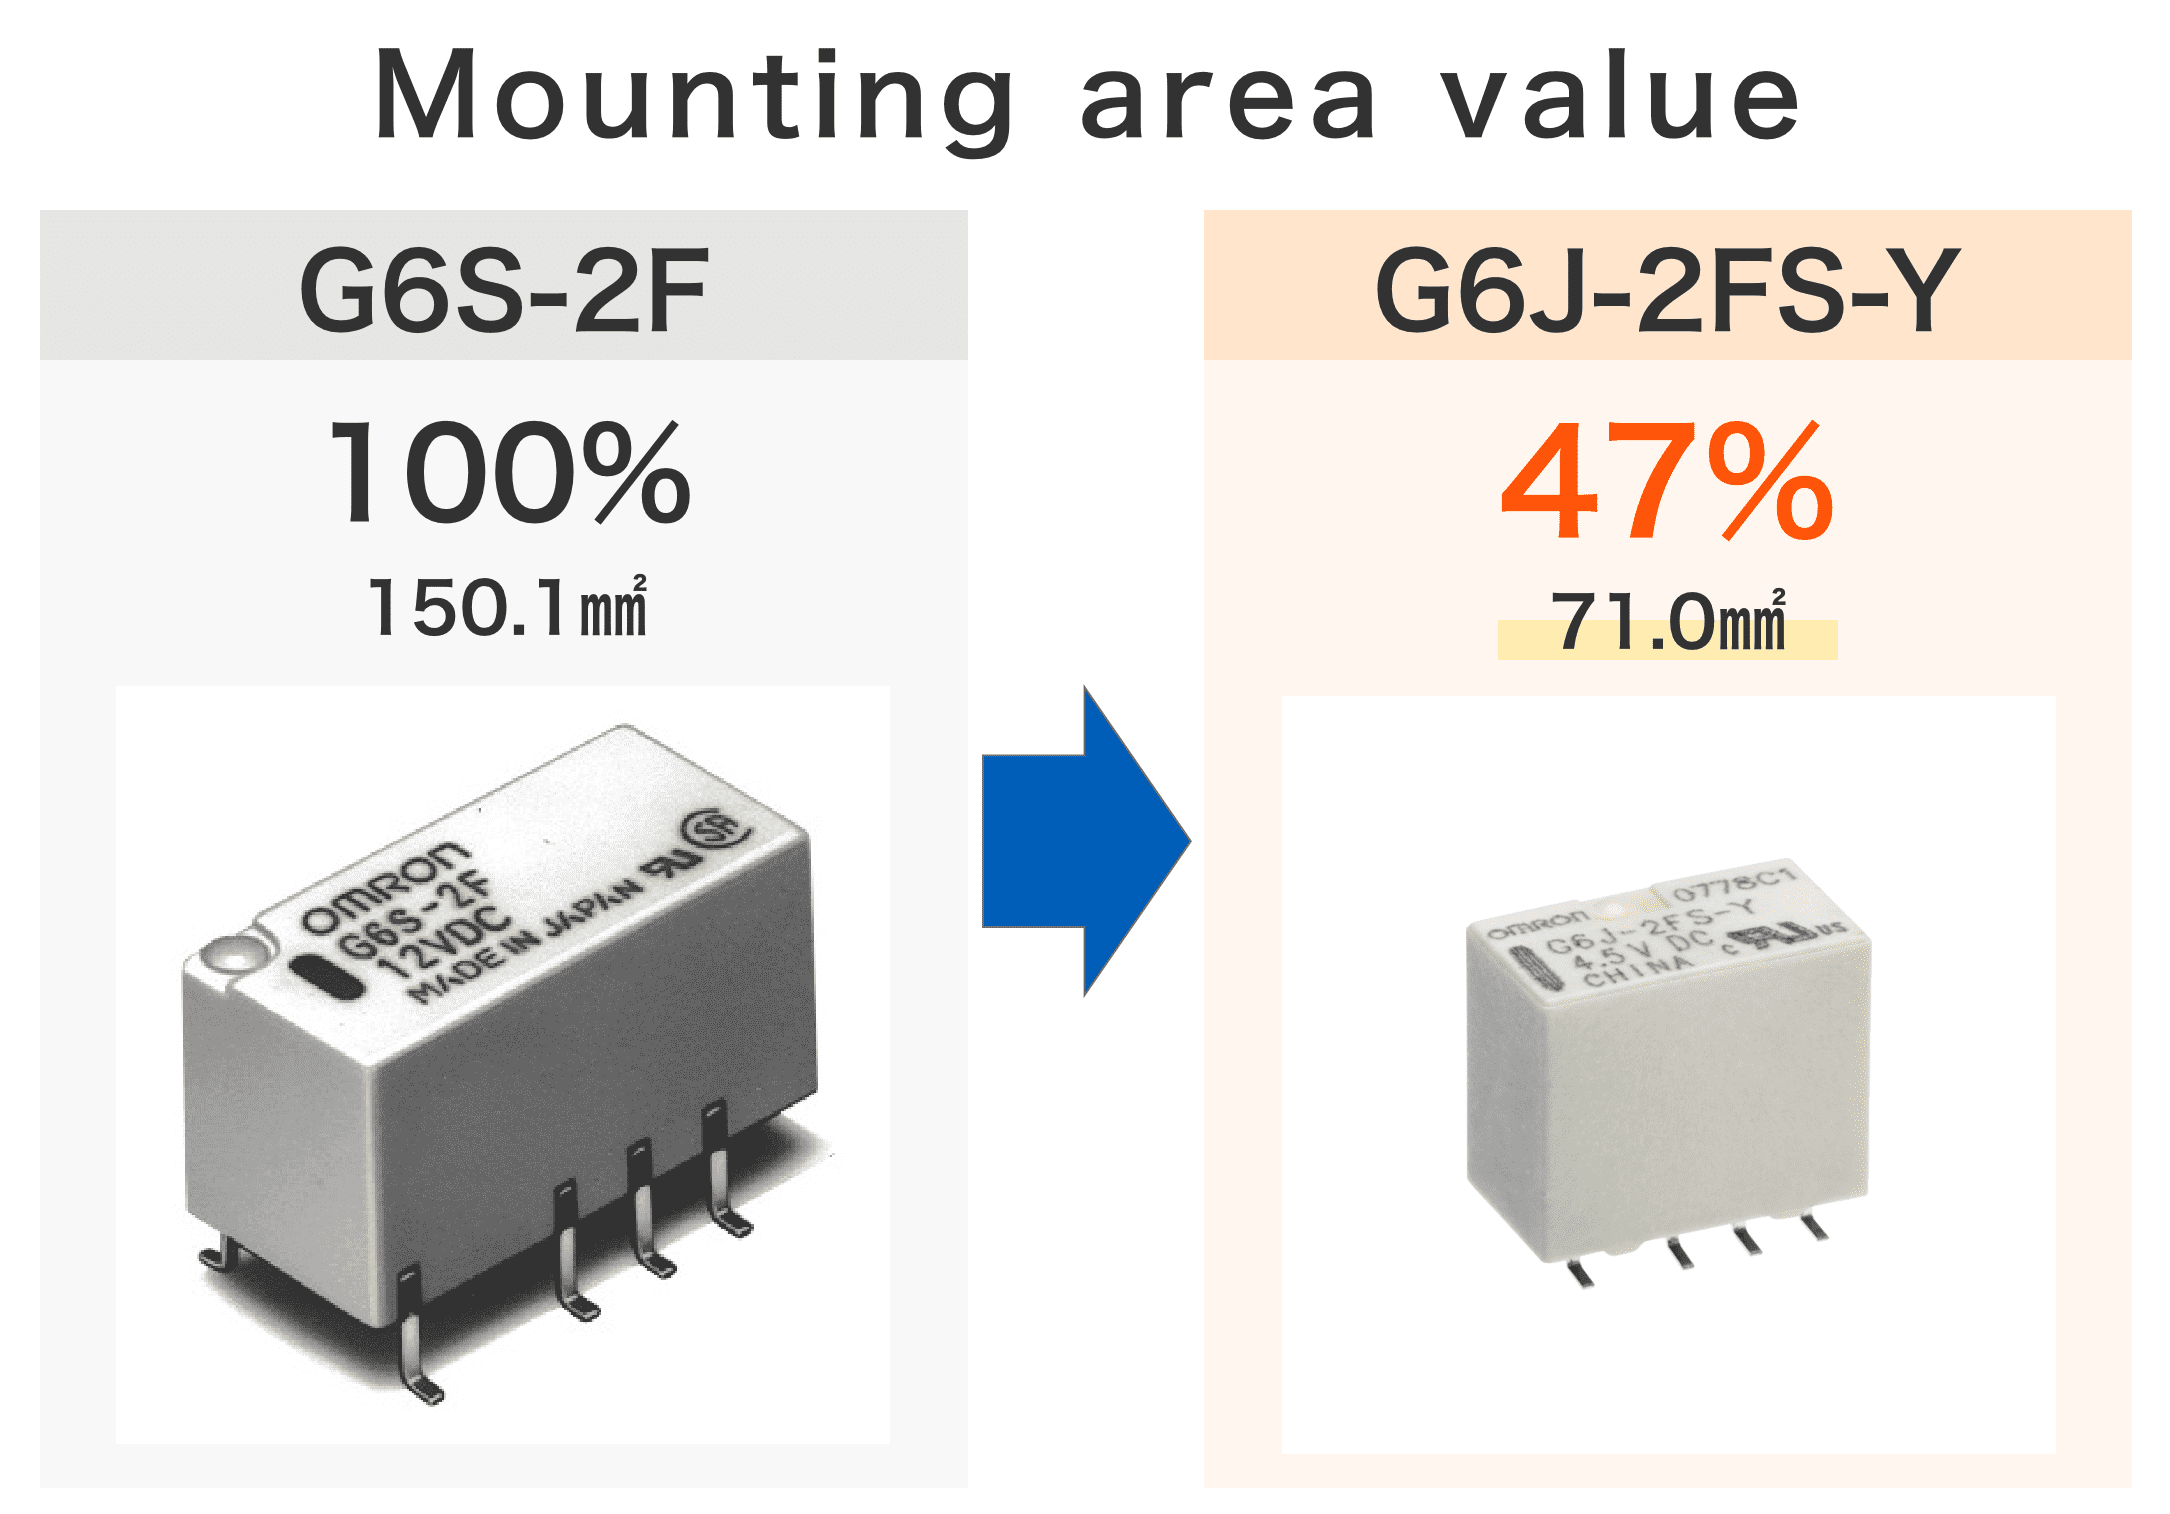 Mounting area value : G6S-2F 100% 150.1mm2 / G6J-2FS-Y 47% 71.0mm2